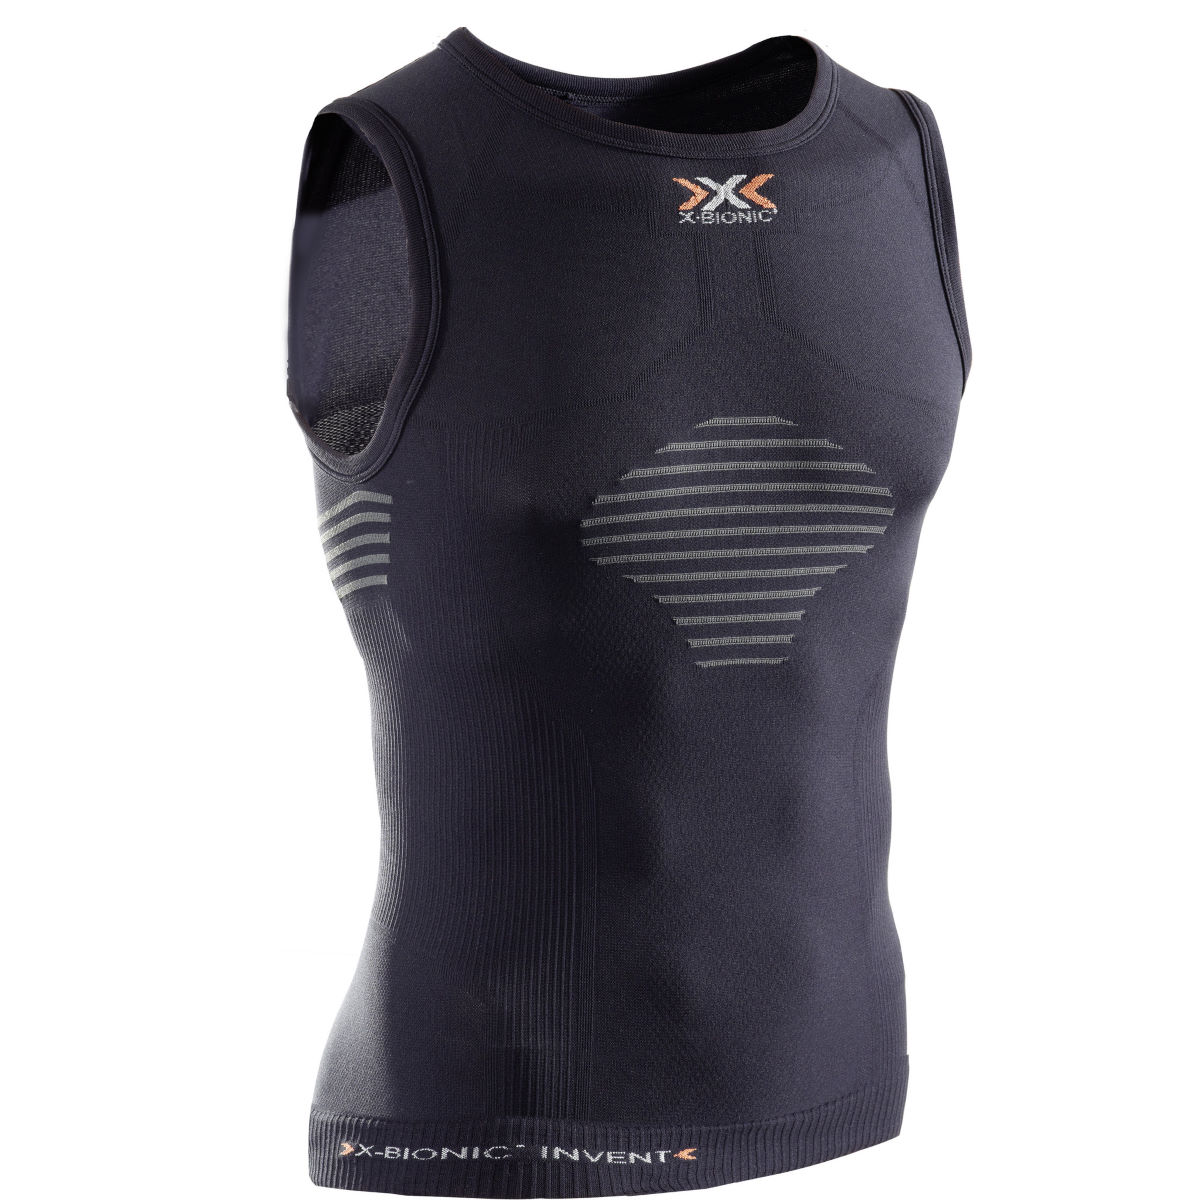 Maillot X-Bionic Invent Light UW (sans manches, blanc) - Large Noir